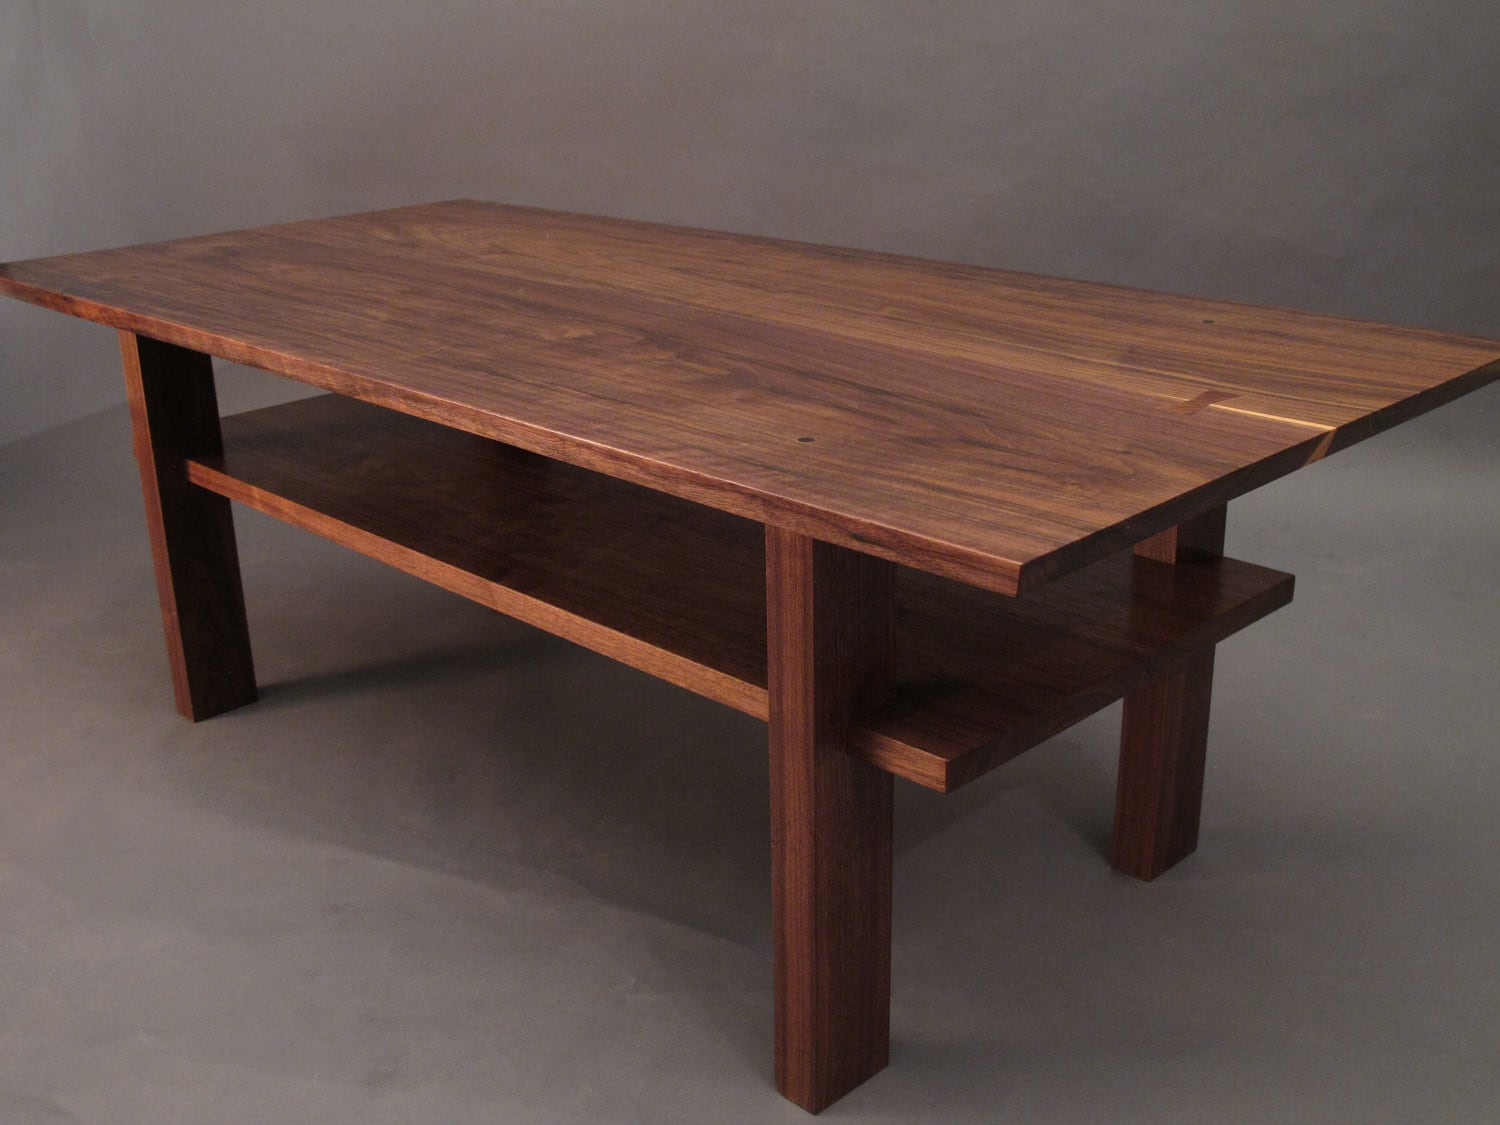 Walnut coffee table small wood tables for living room narrow etsy